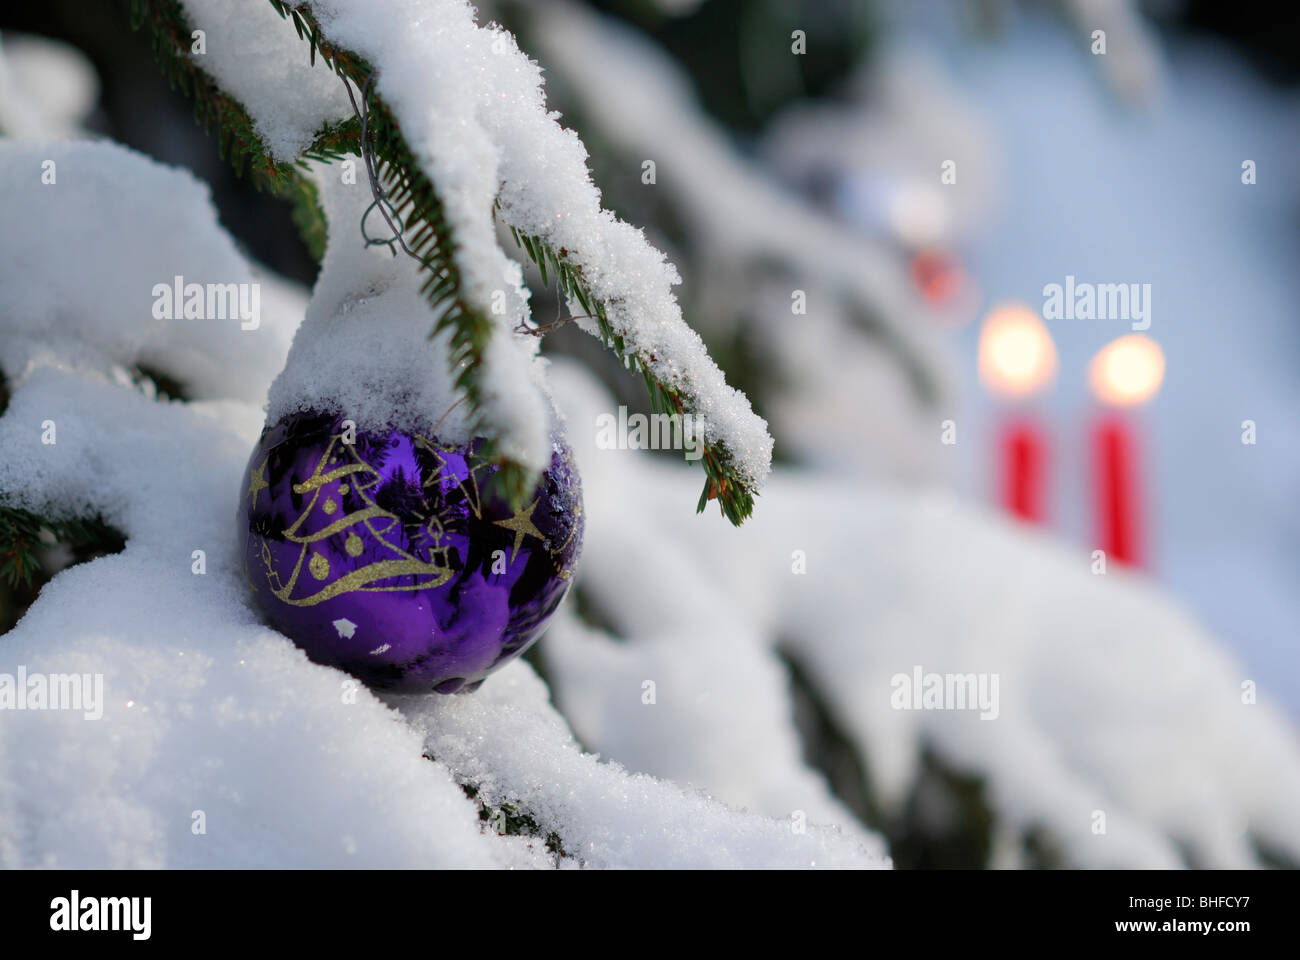 Christmas bauble hanging at snowcovered Christmastree with burning candles in background - Stock Image